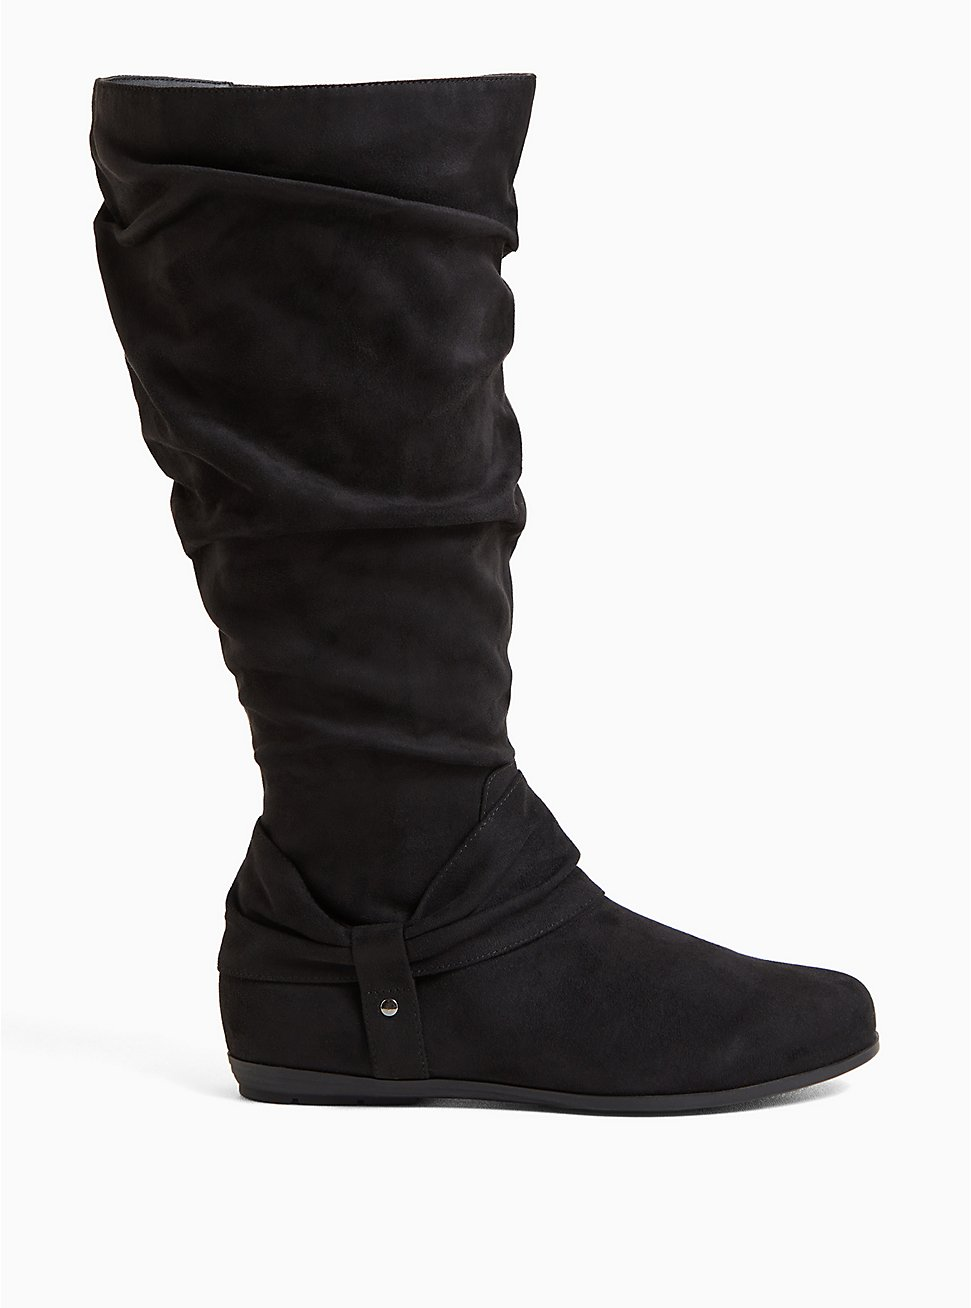 Black Faux Suede Scrunched Knee-High Boot (WW & Wide to Extra Wide Calf), BLACK, hi-res